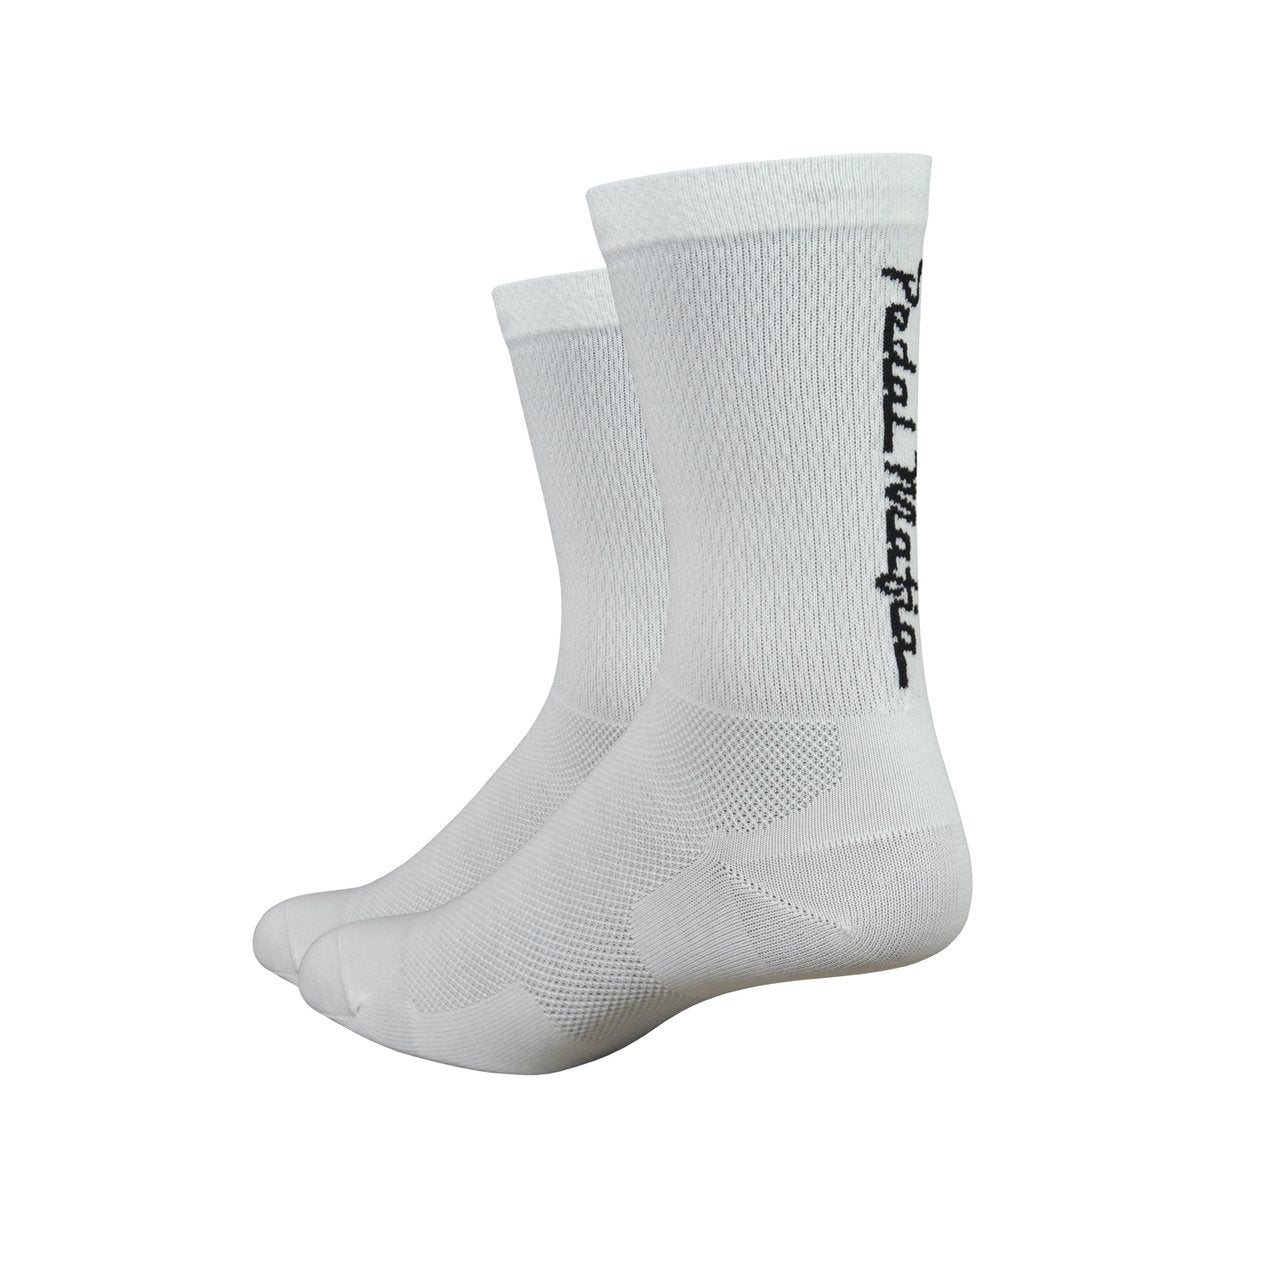 "Defeet Cycle Clothing > Socks White/Black / s DeFeet Pedal Mafia Levitator Lite 6"" Socks"